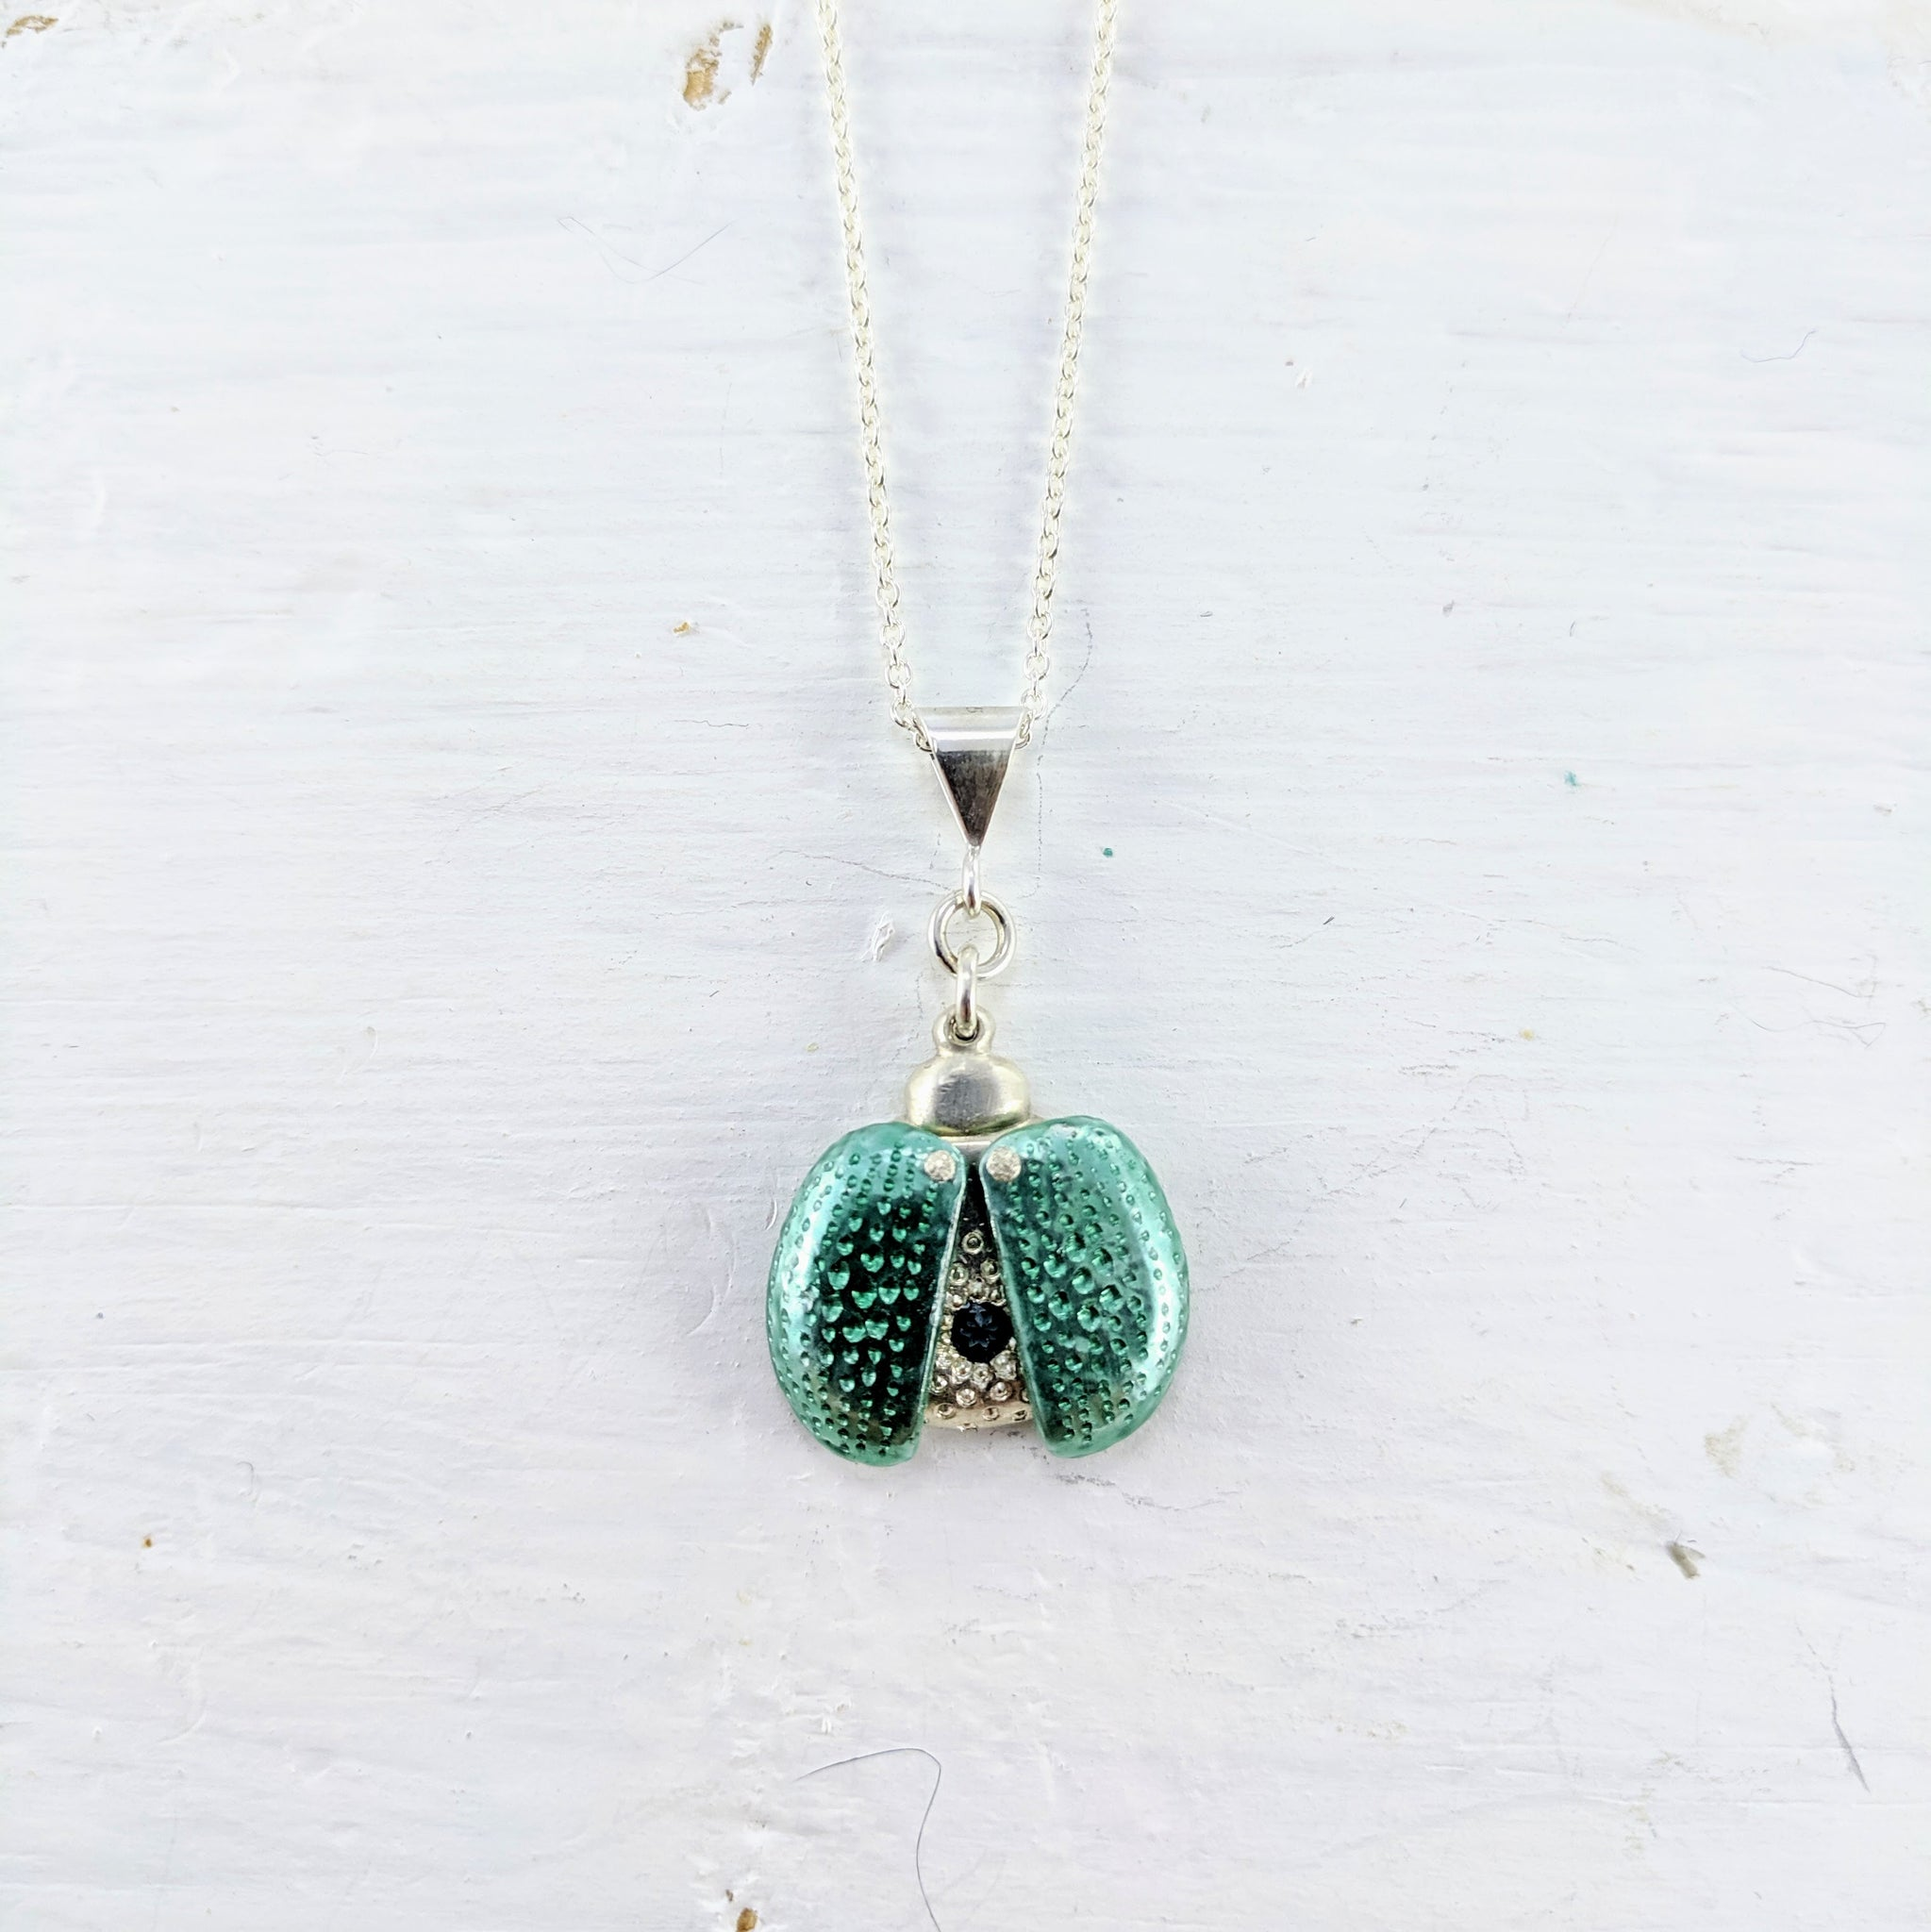 This is a solid silver pendant in the shape of a small  ladybug hanging on a fine chain. It has pale green coloured wings which open up to show a small round  green gemstone.  By Adele Stewart.